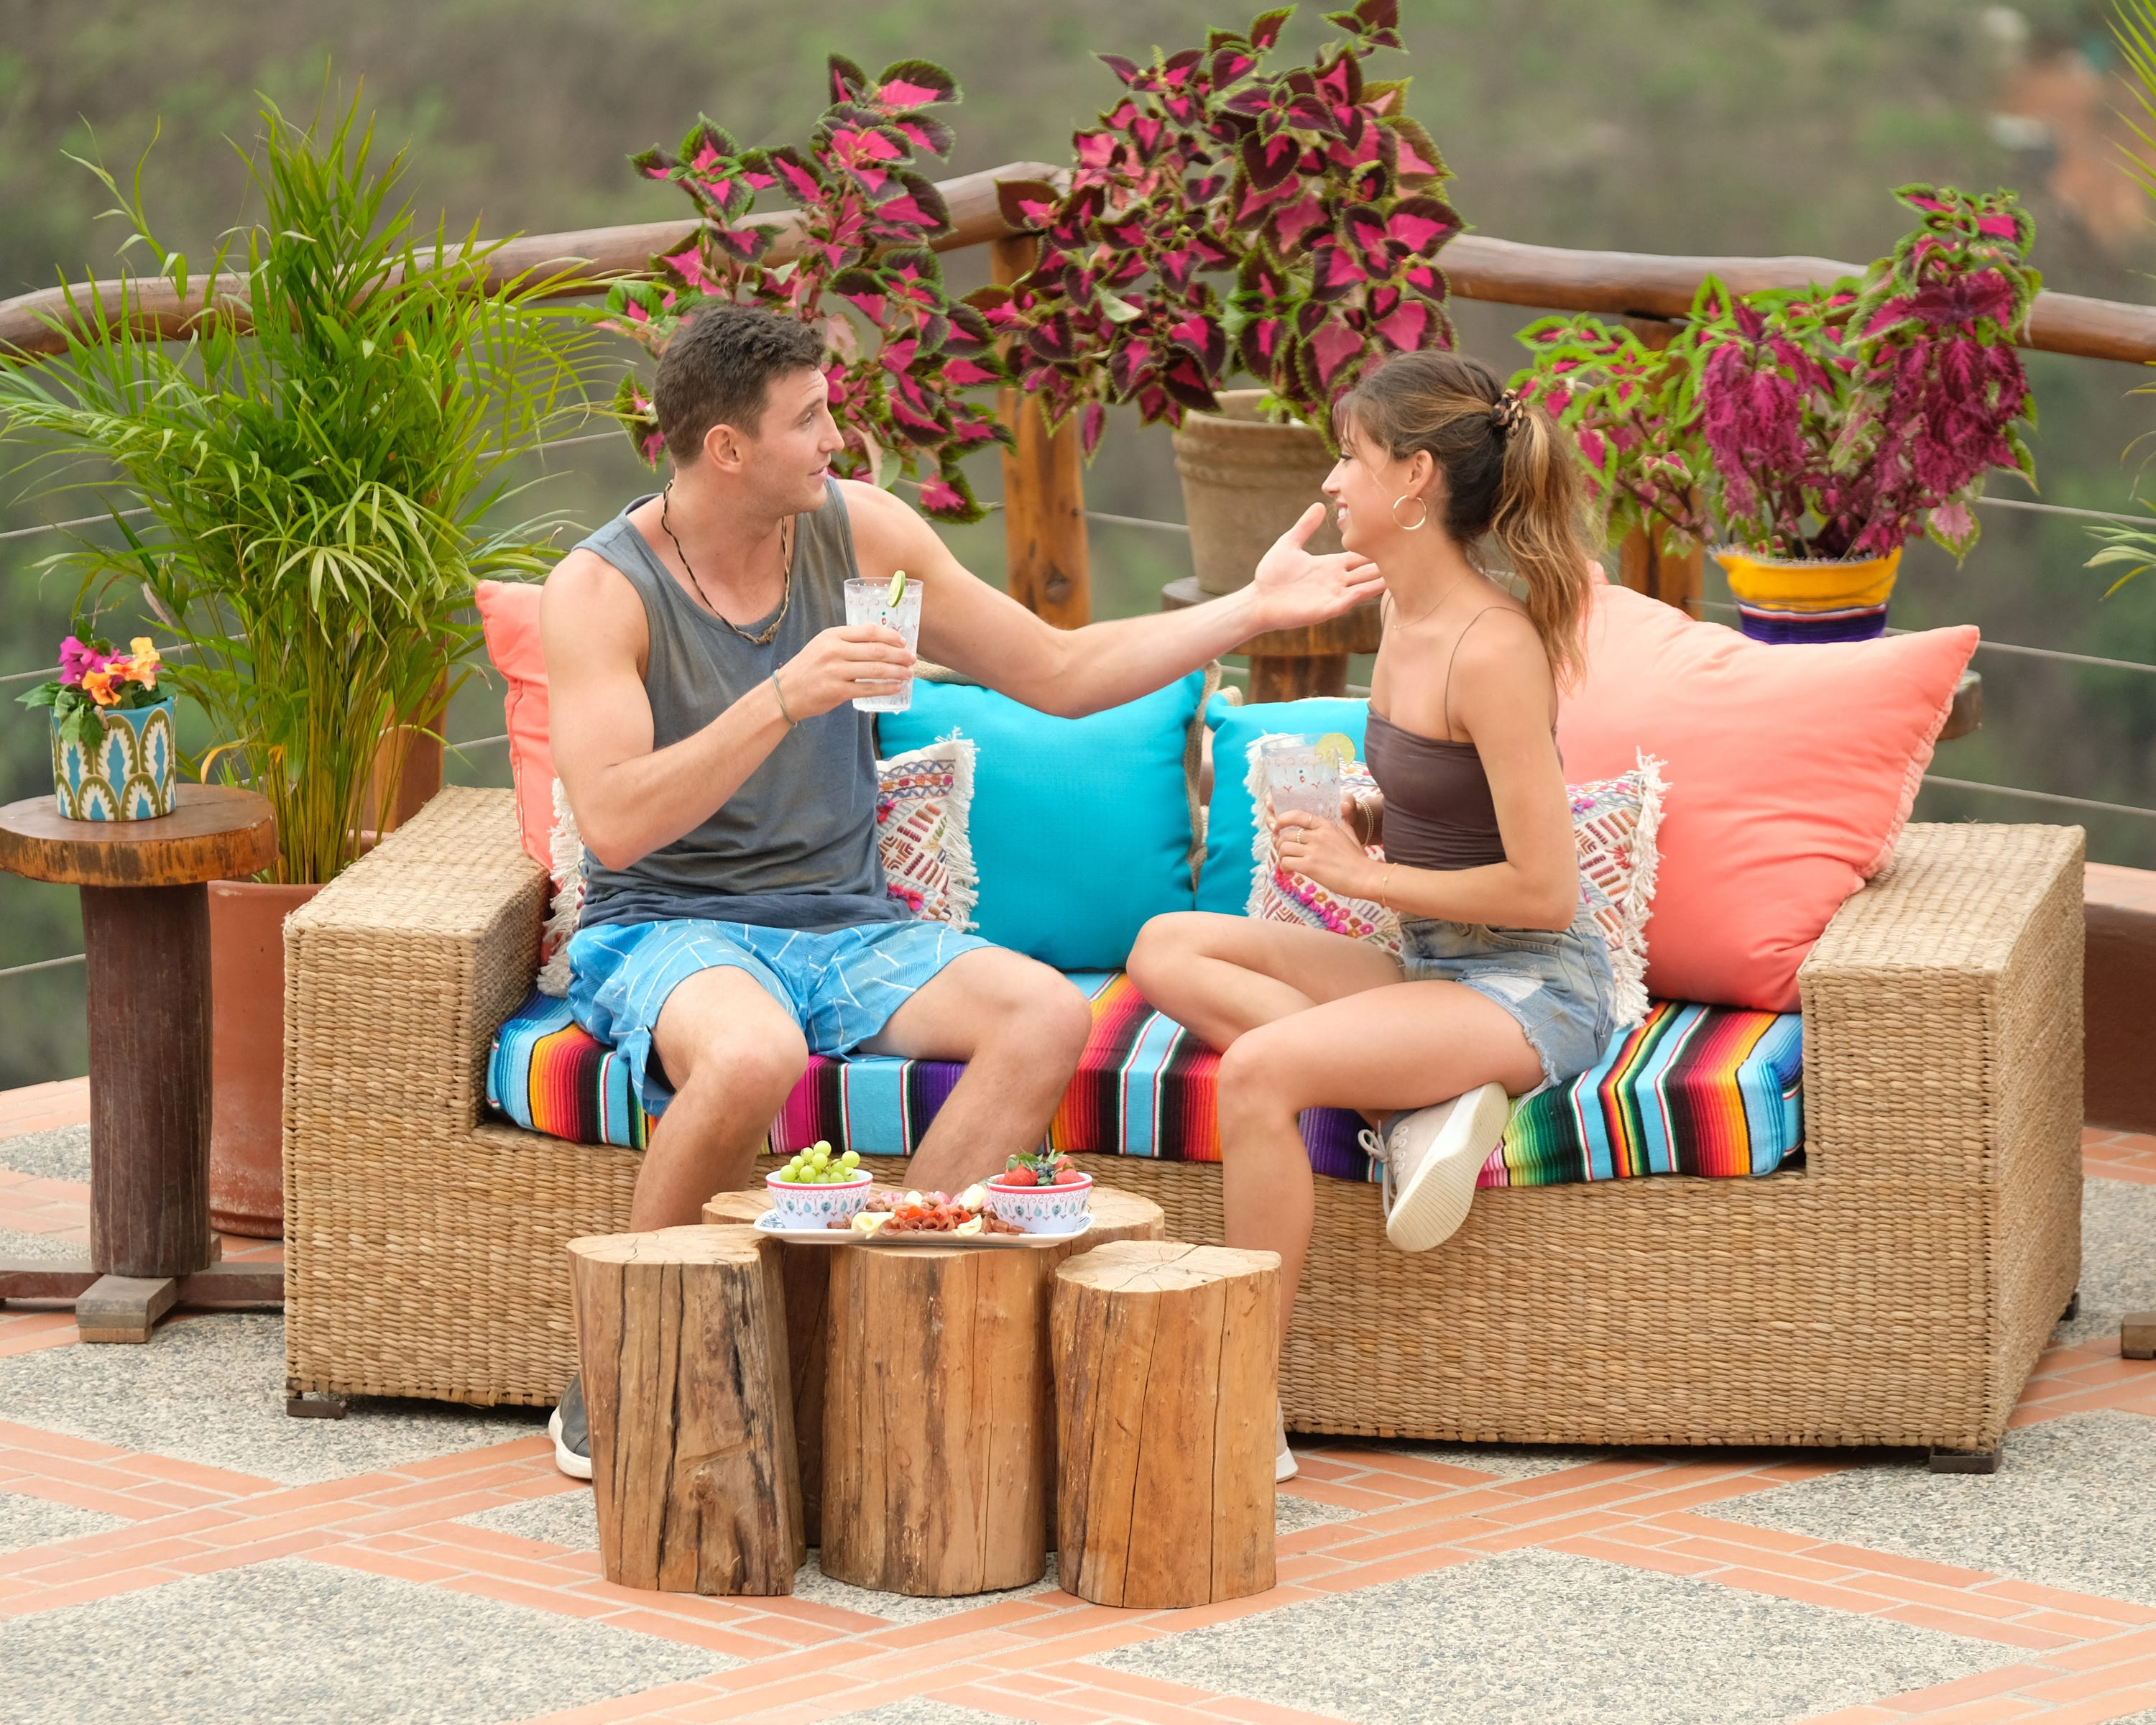 What Is Going On Between Kristina & Blake In The Bachelor In Paradise Episode 6 Promo?